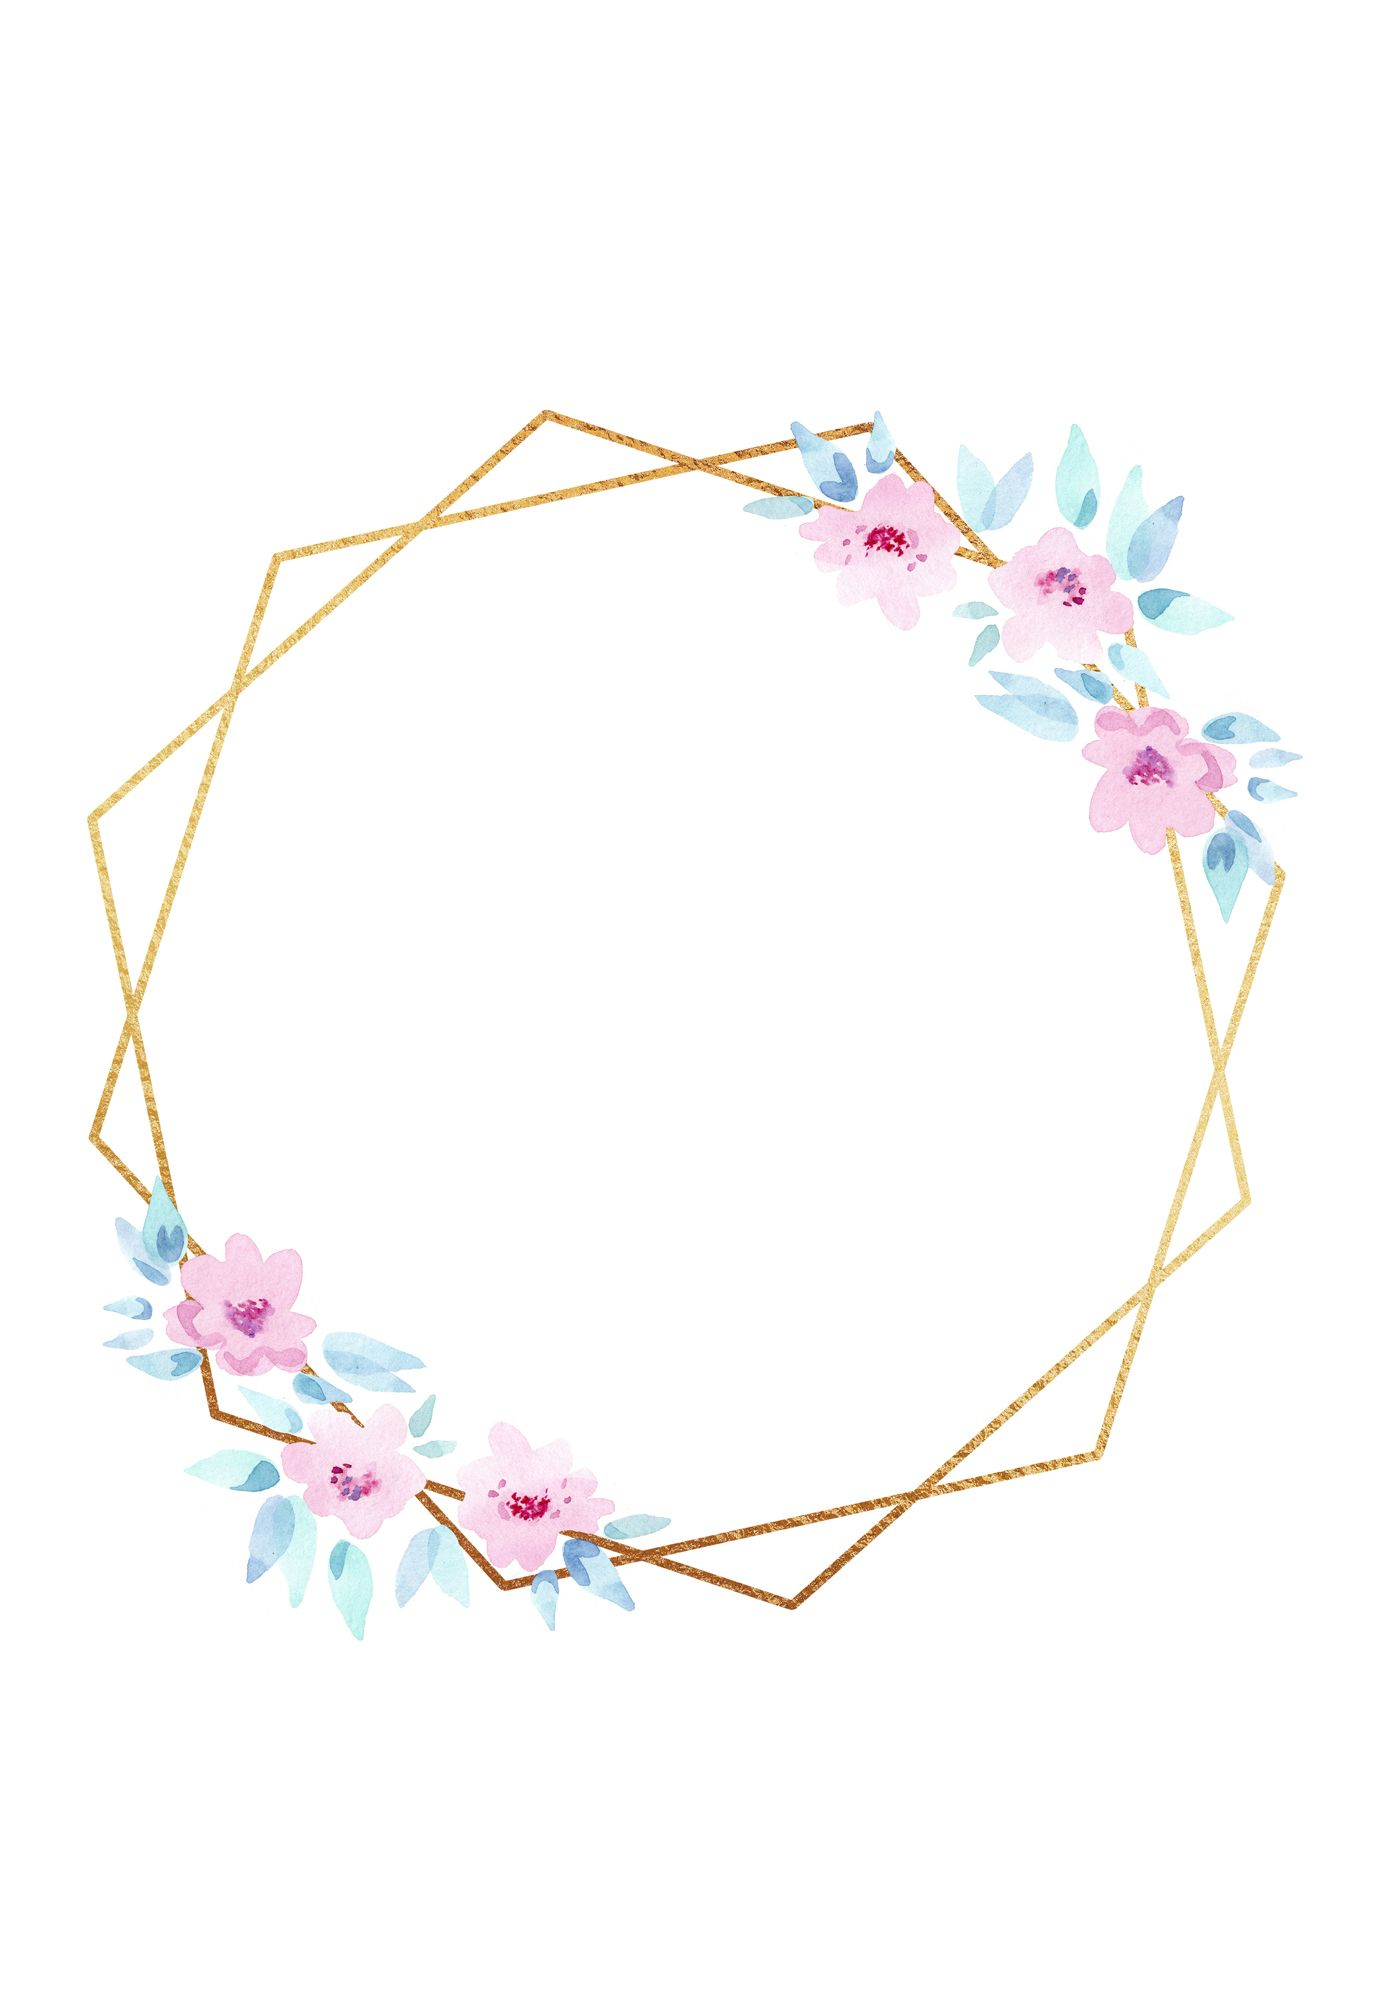 Gold Polygonal Floral Frames Clipart Crystal Frames Png For Etsy Hand Embroidery Patterns Flowers Hand Embroidery Kit Hand Tattoos For Girls